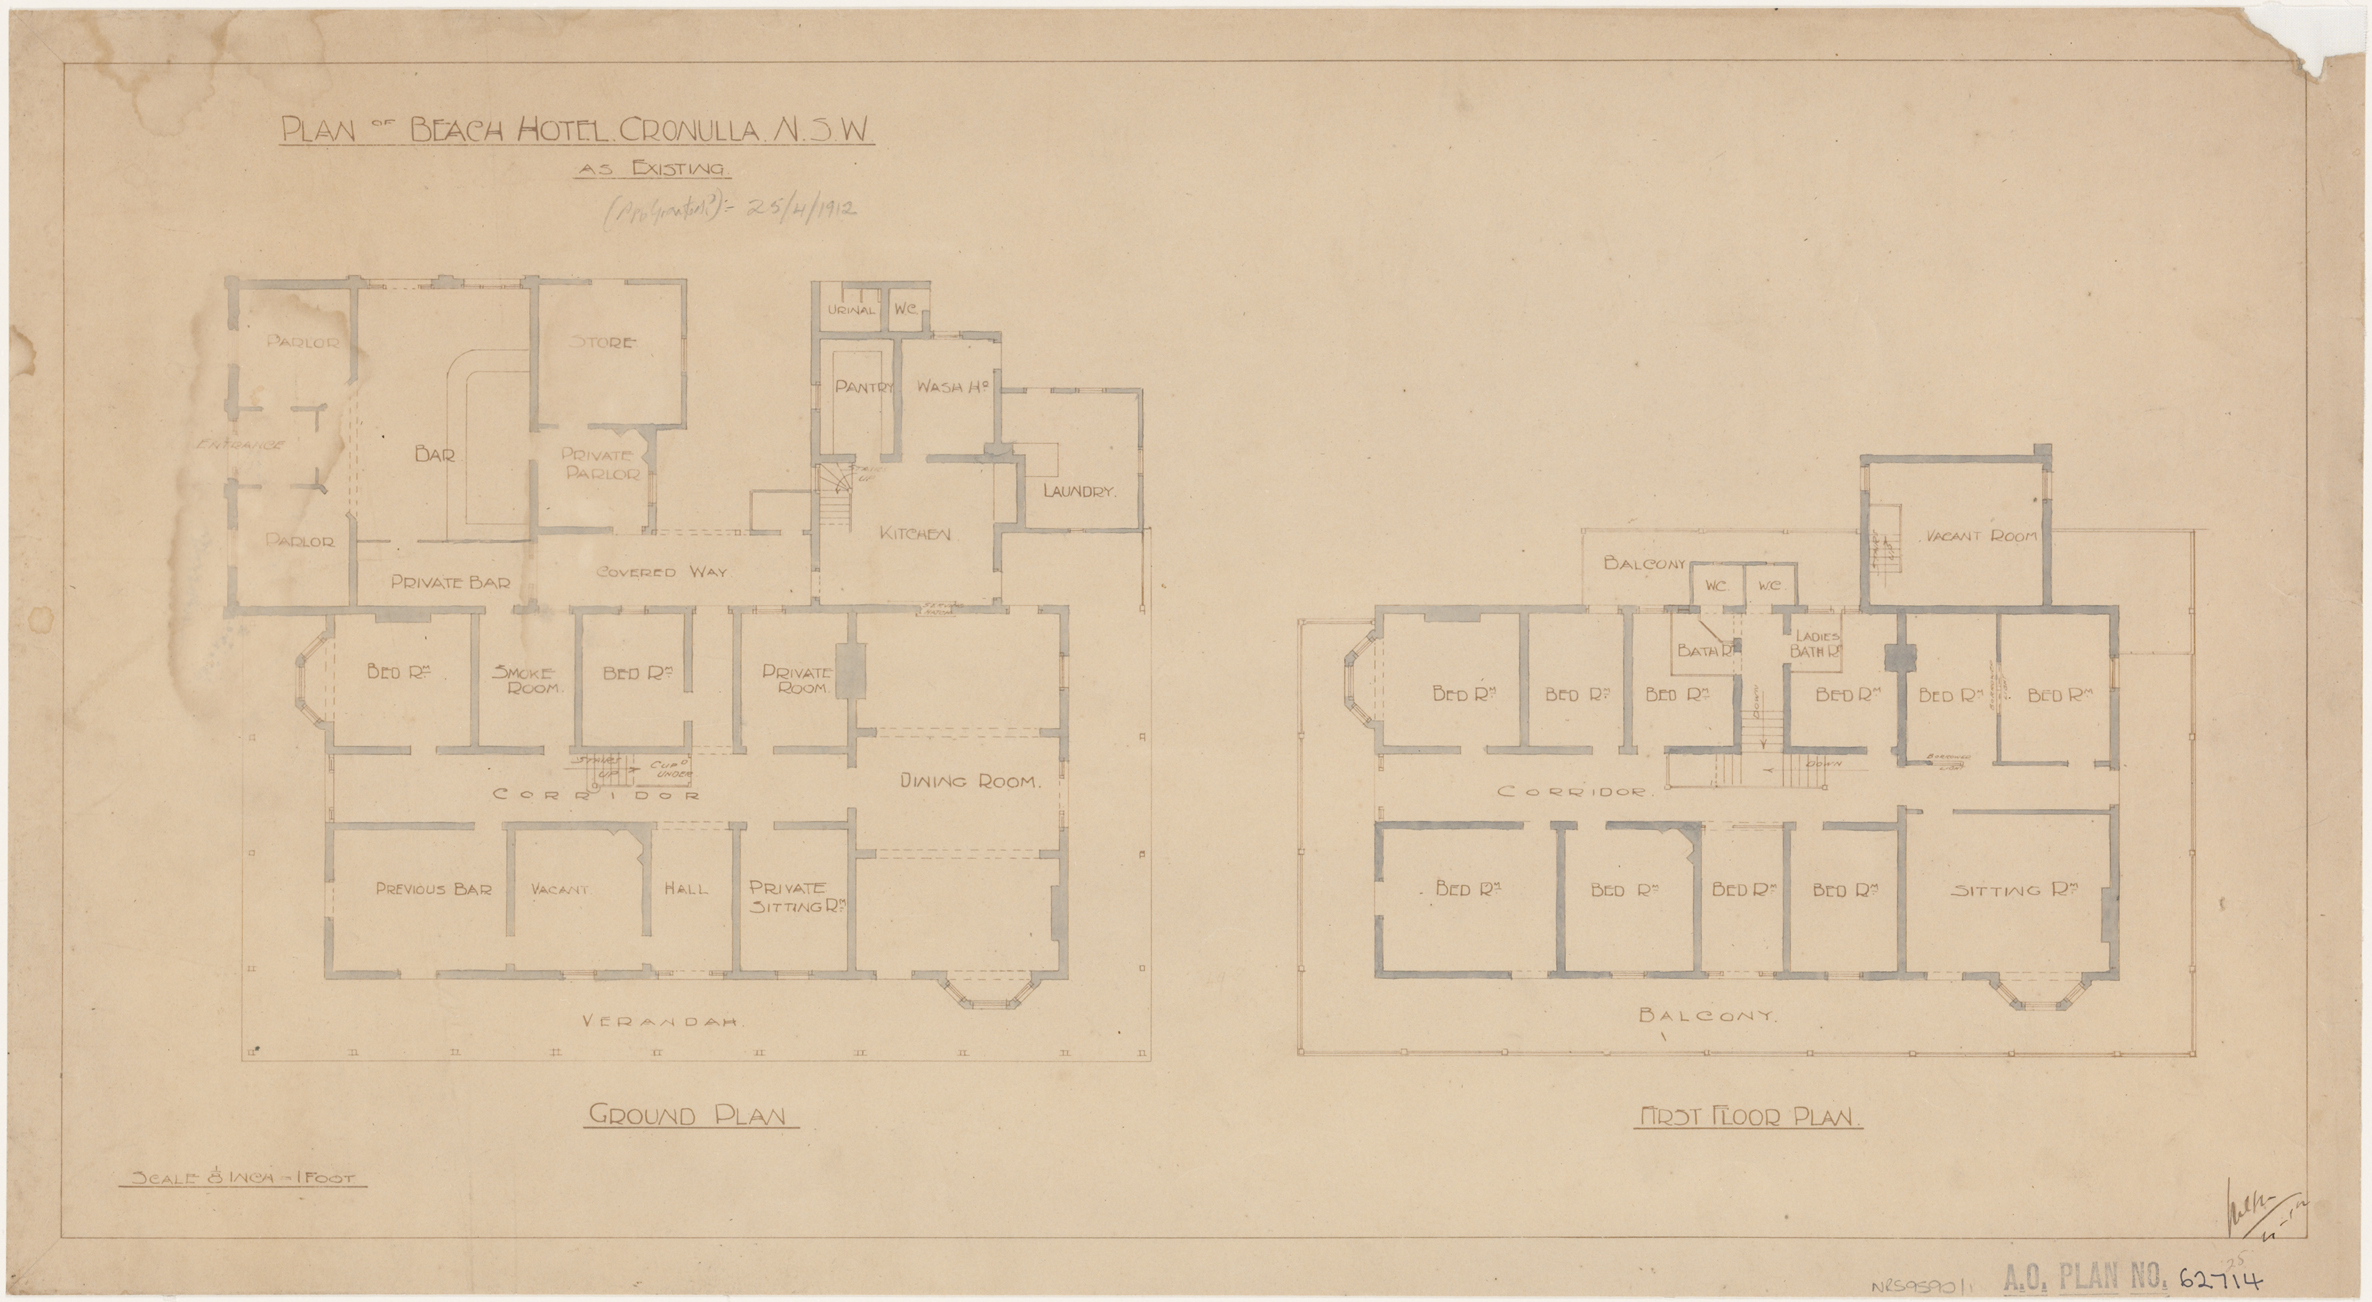 Beach Hotel Cronulla, Cronulla, Plan of hotel as existing, ground and first floor plan.  Initialled 25 April 1912